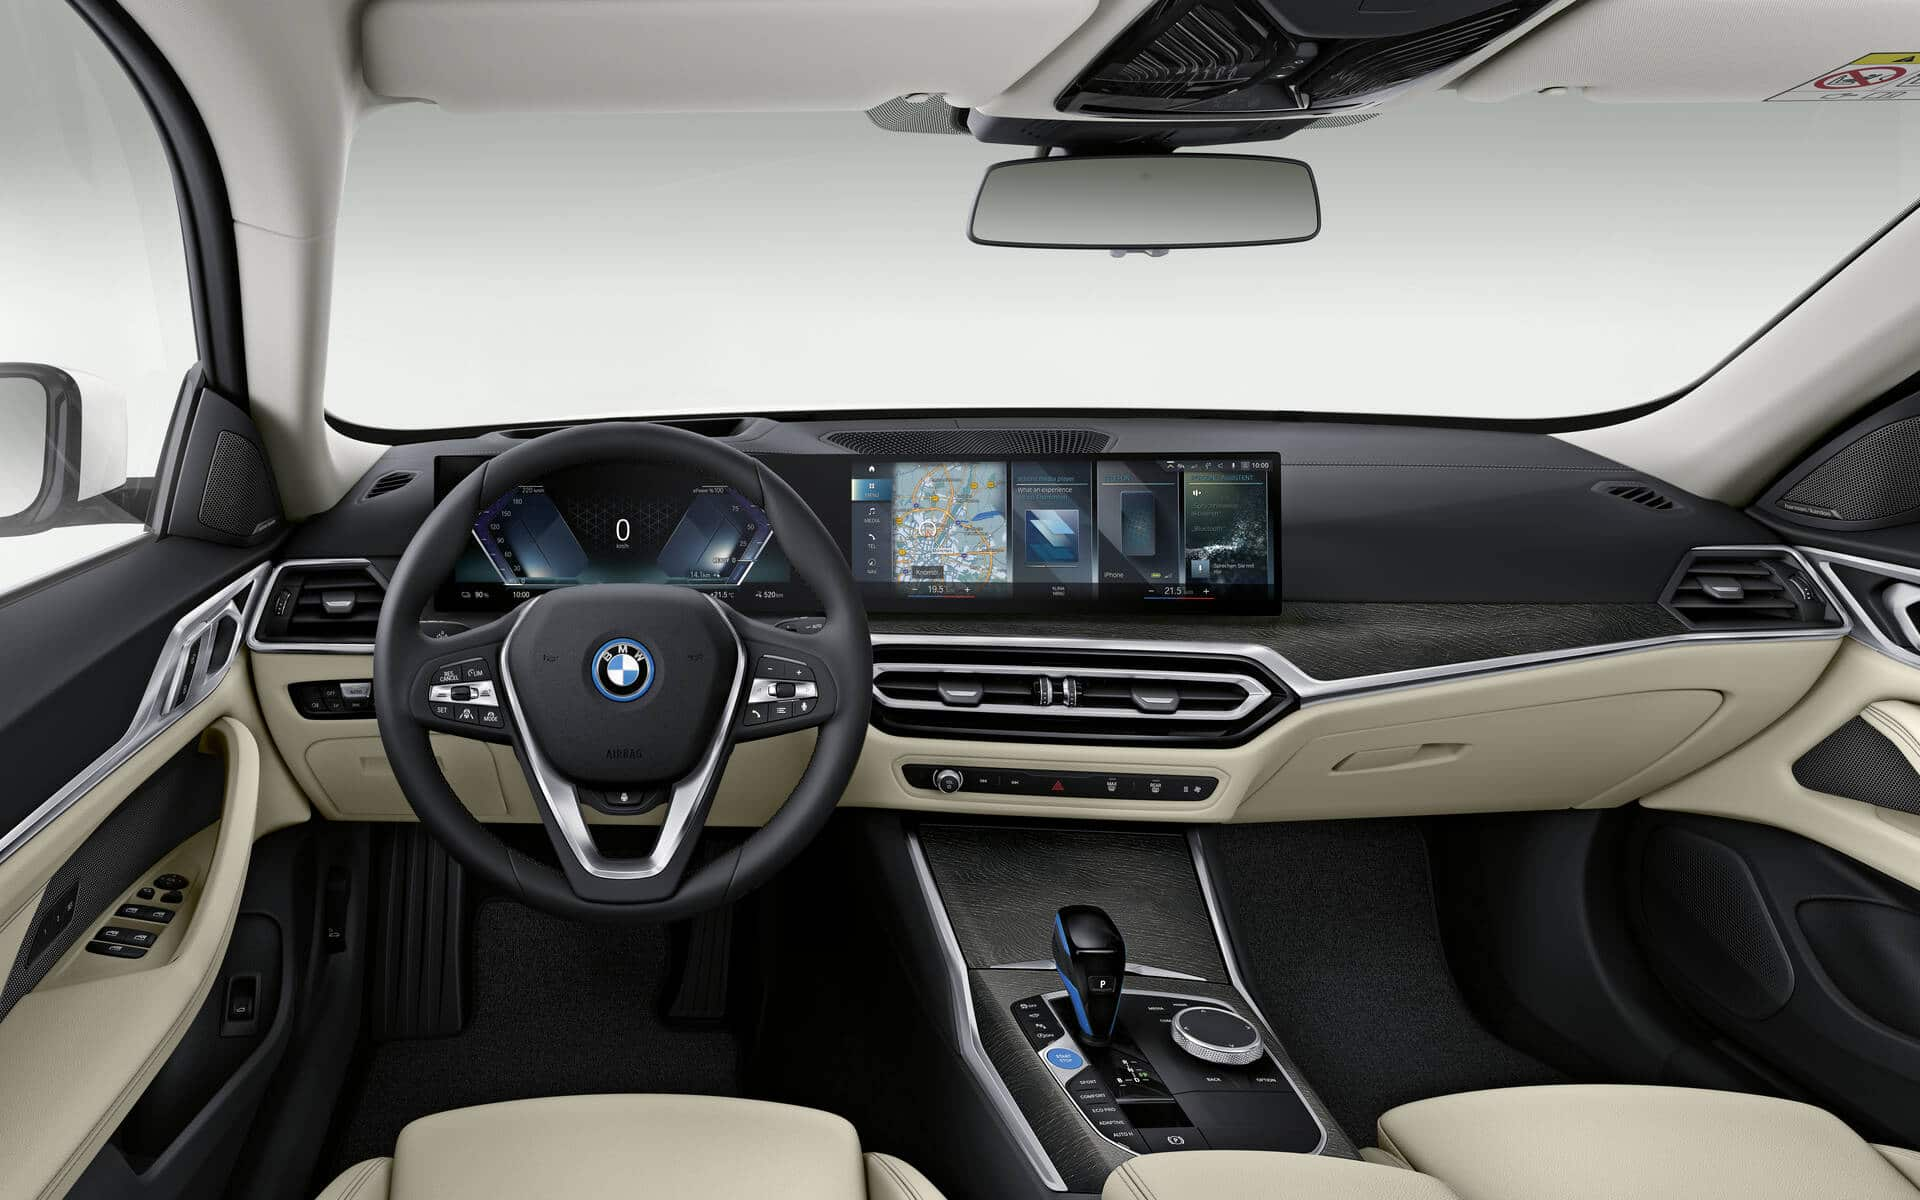 The modern and luxurious interior of the 2022 BMW i4. Source: www.guideauto.ca